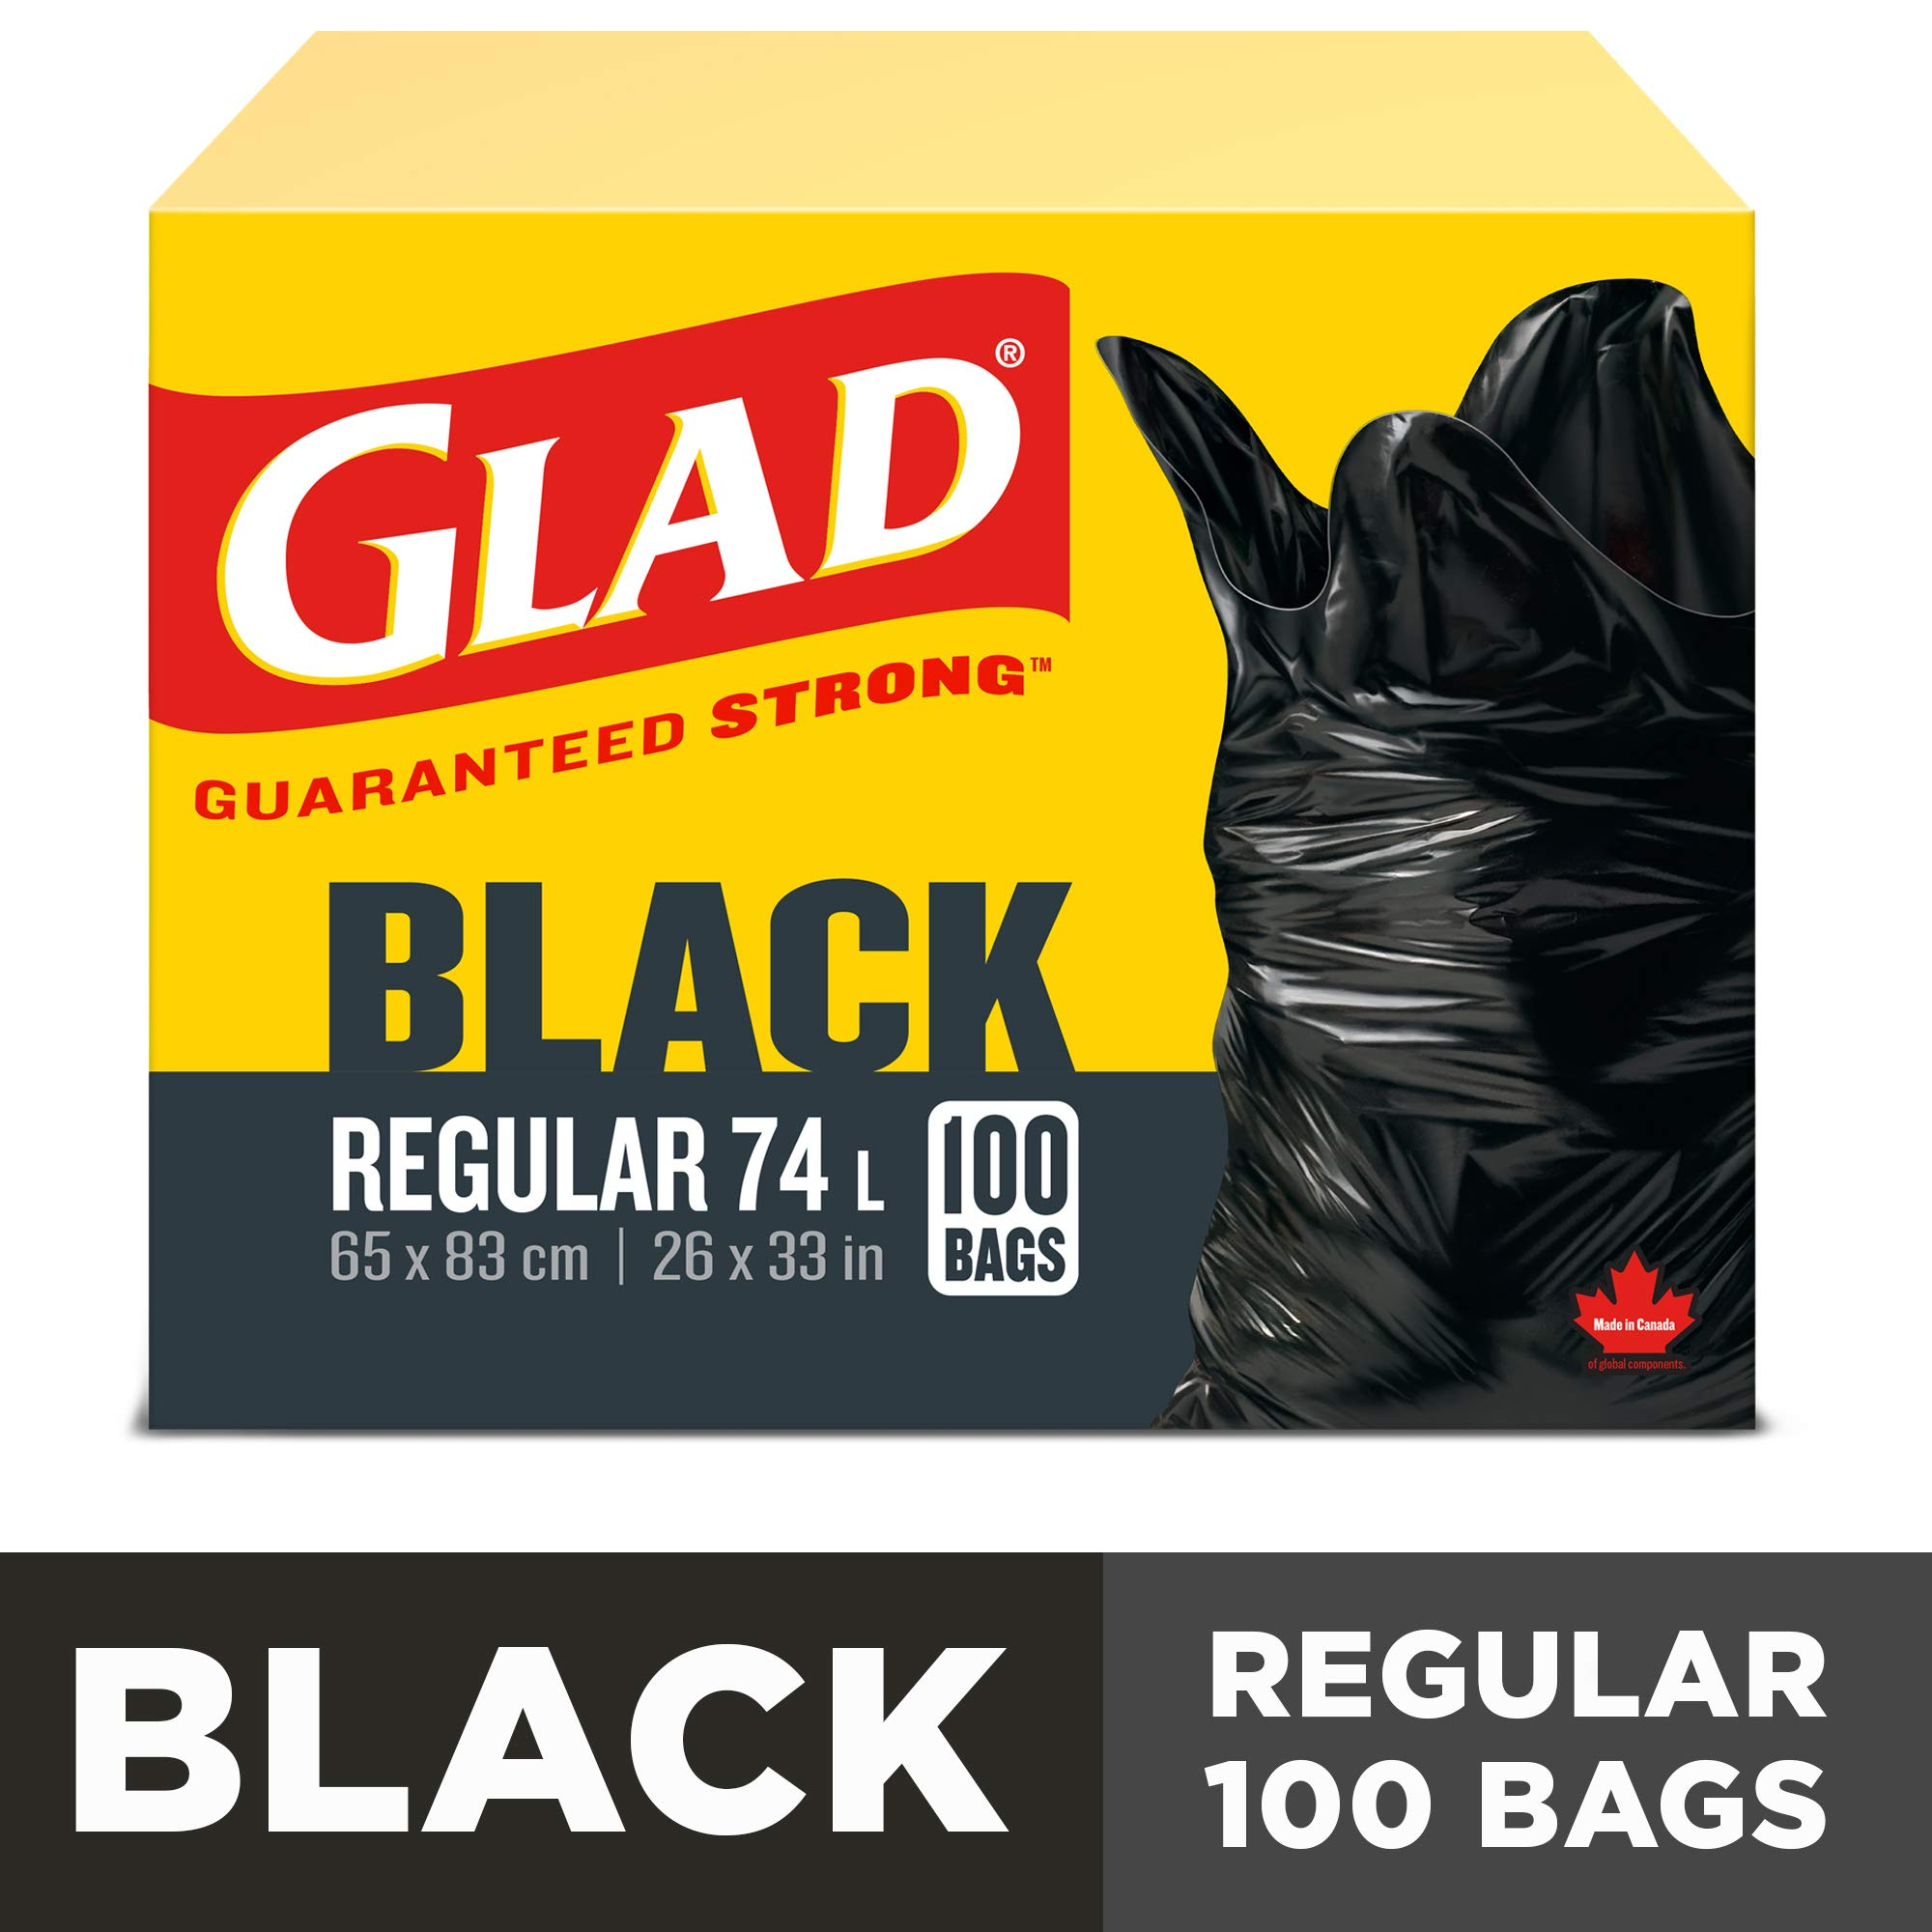 Glad Black Garbage Bags - Regular 74 Litres - 100 Trash Bags product image